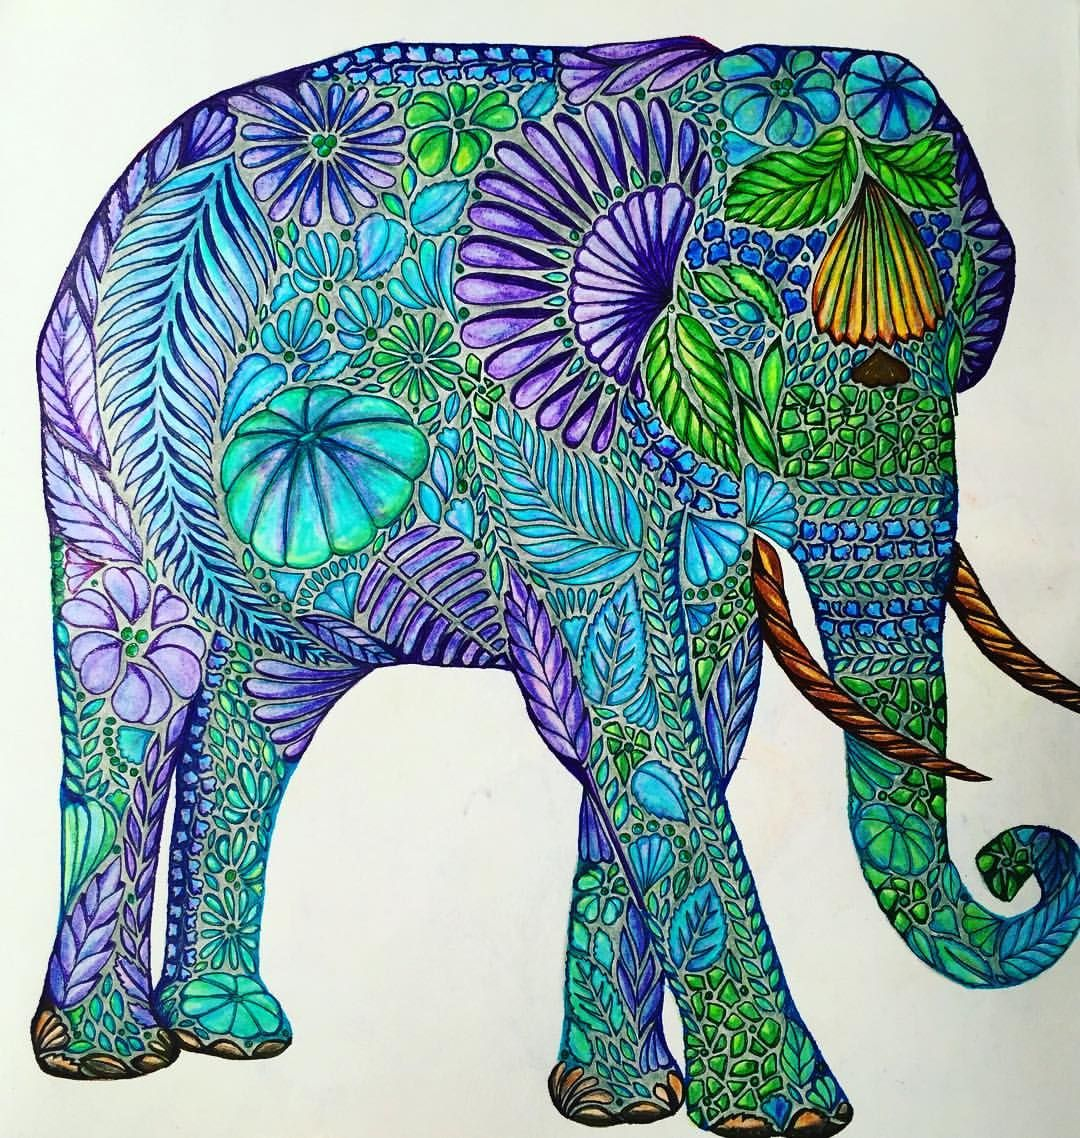 Deanna t au on instagram elephant elephant nature adultcoloringbook completed coloring - Dessin elephant ...